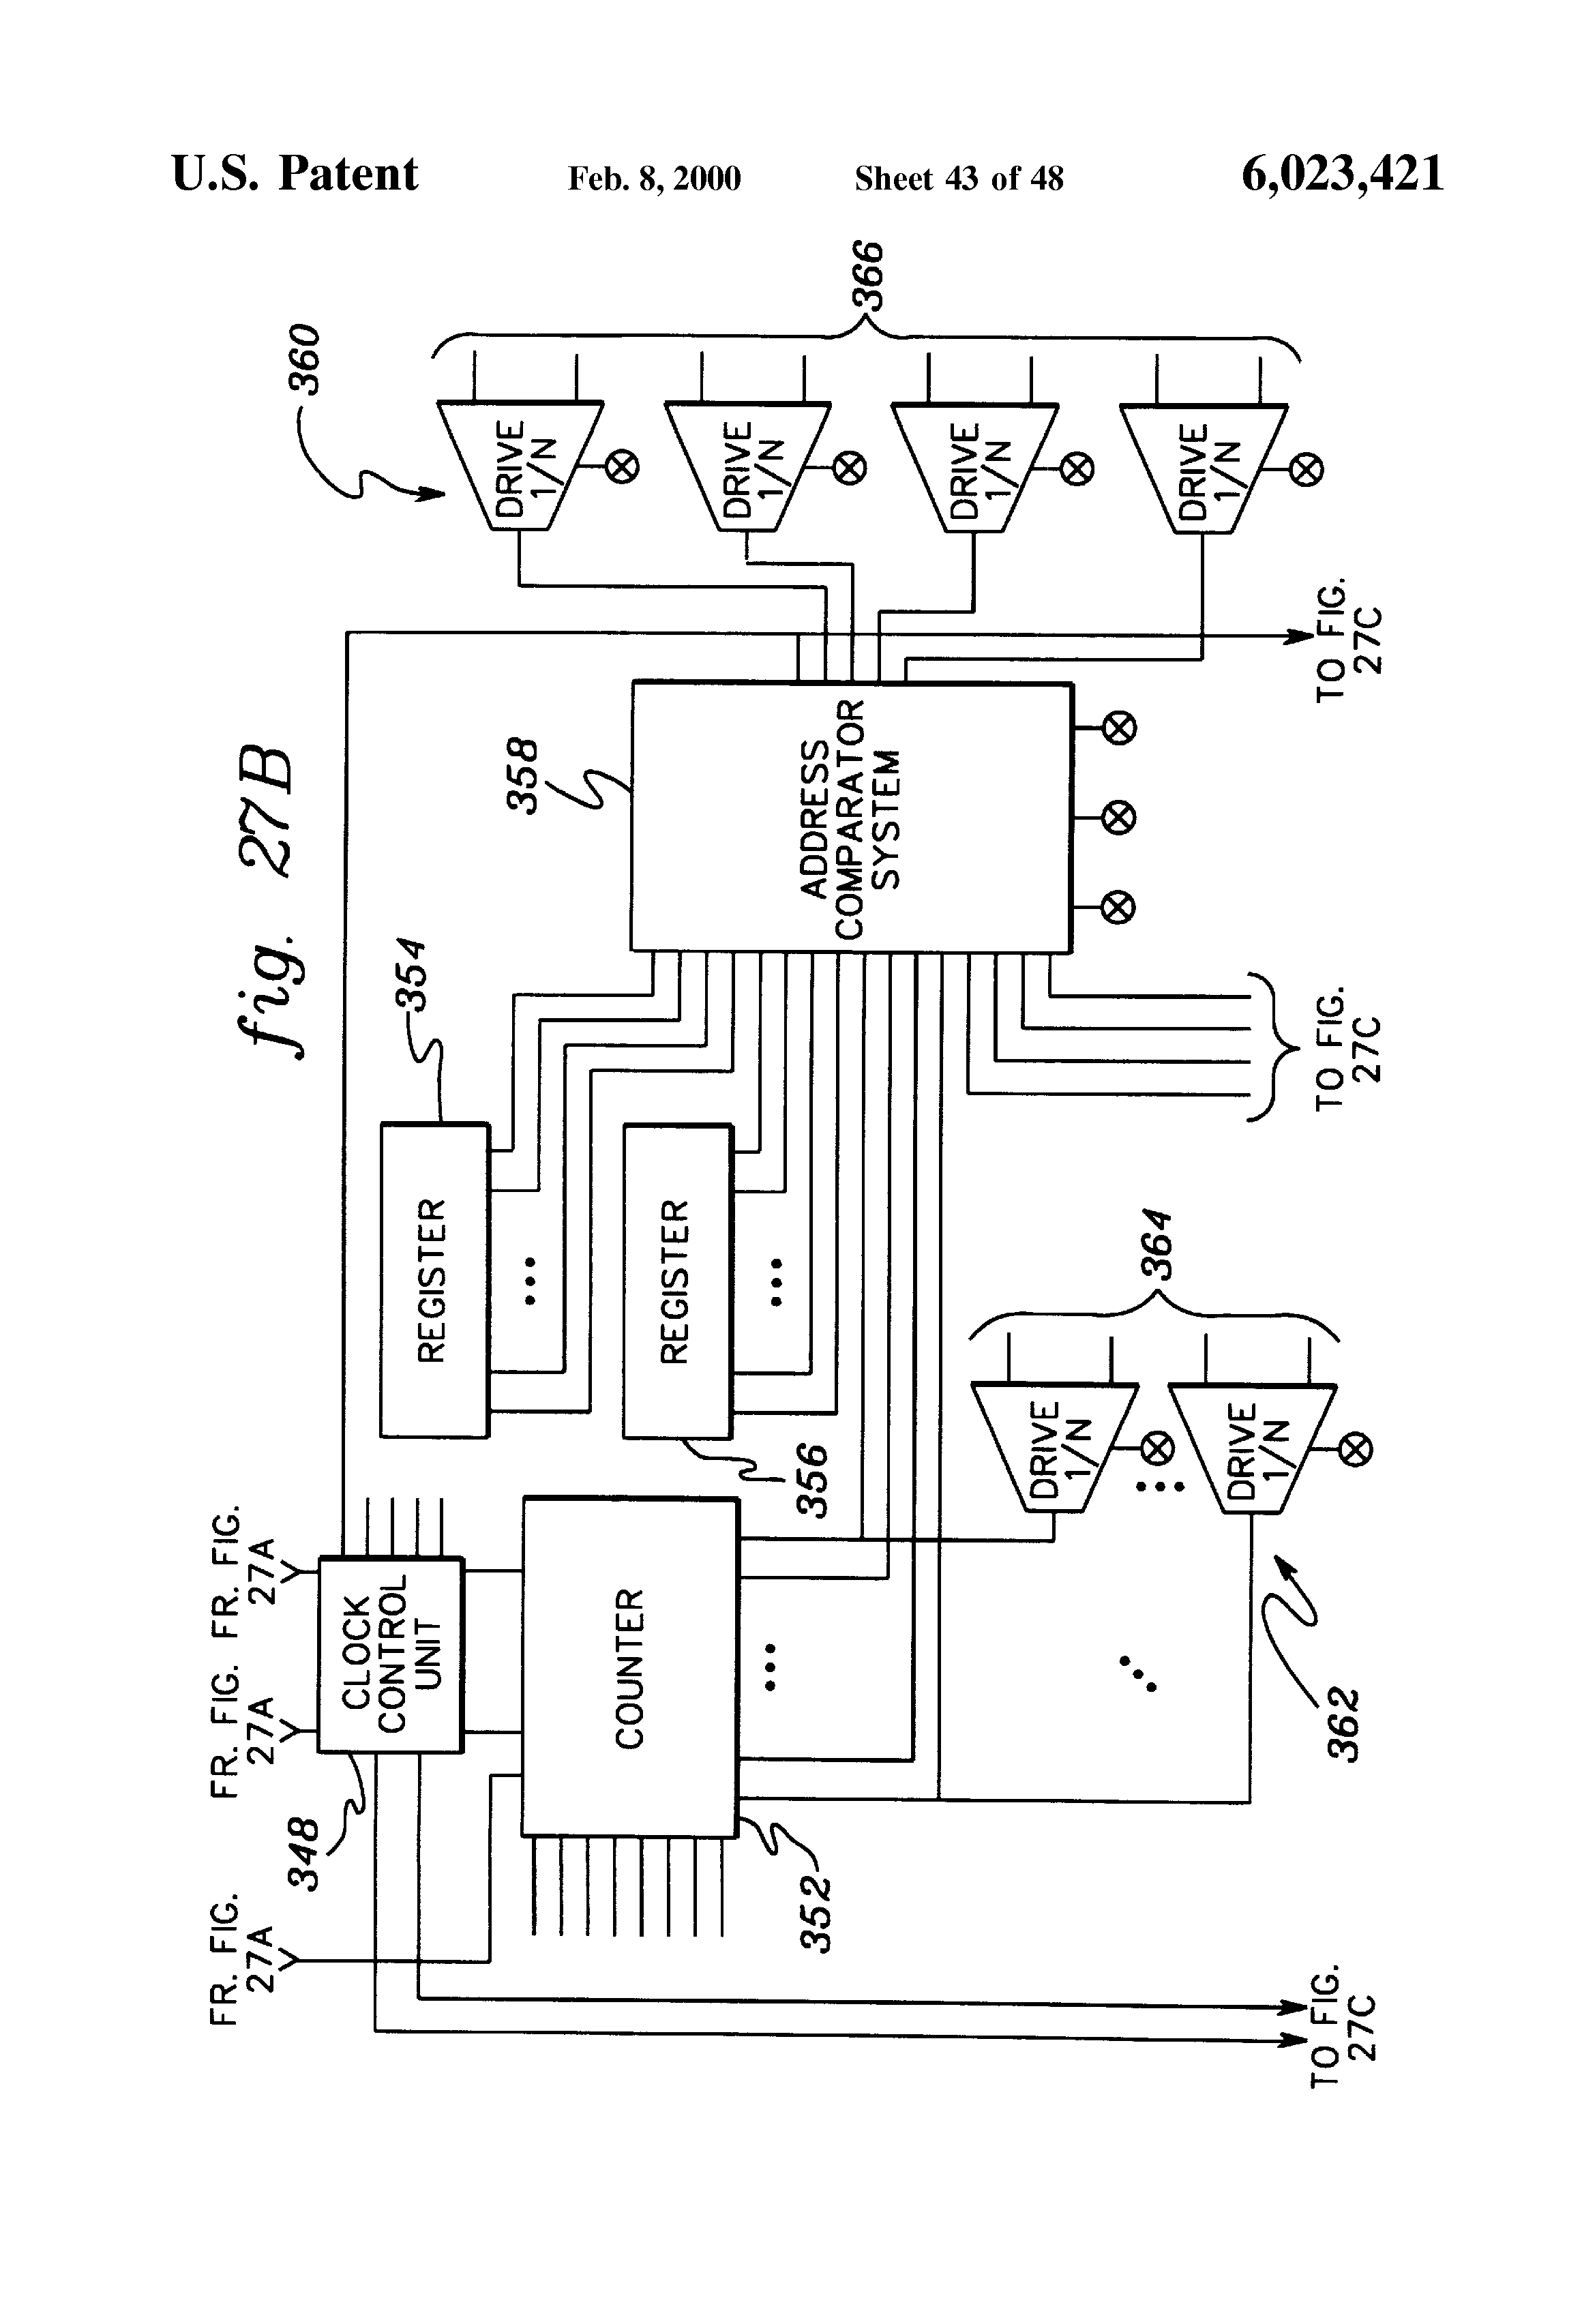 memory hierarchy diagram course management system class brevetto us6023421 selective connectivity between